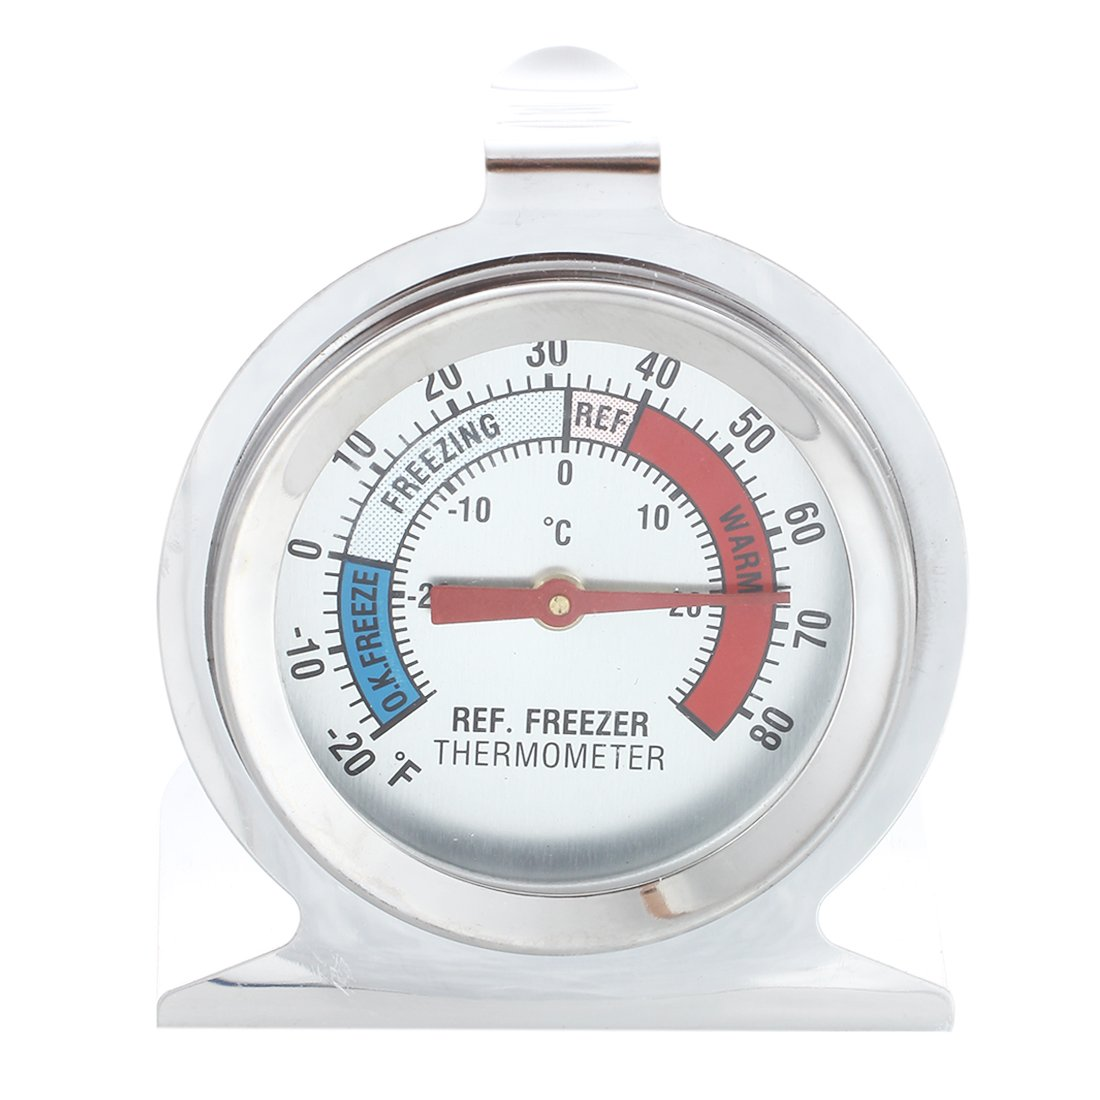 SODIAL(R) Stainless Steel Dail Thermometer for Refrigerator Fridge Freezer AEQW-WER-AW127550